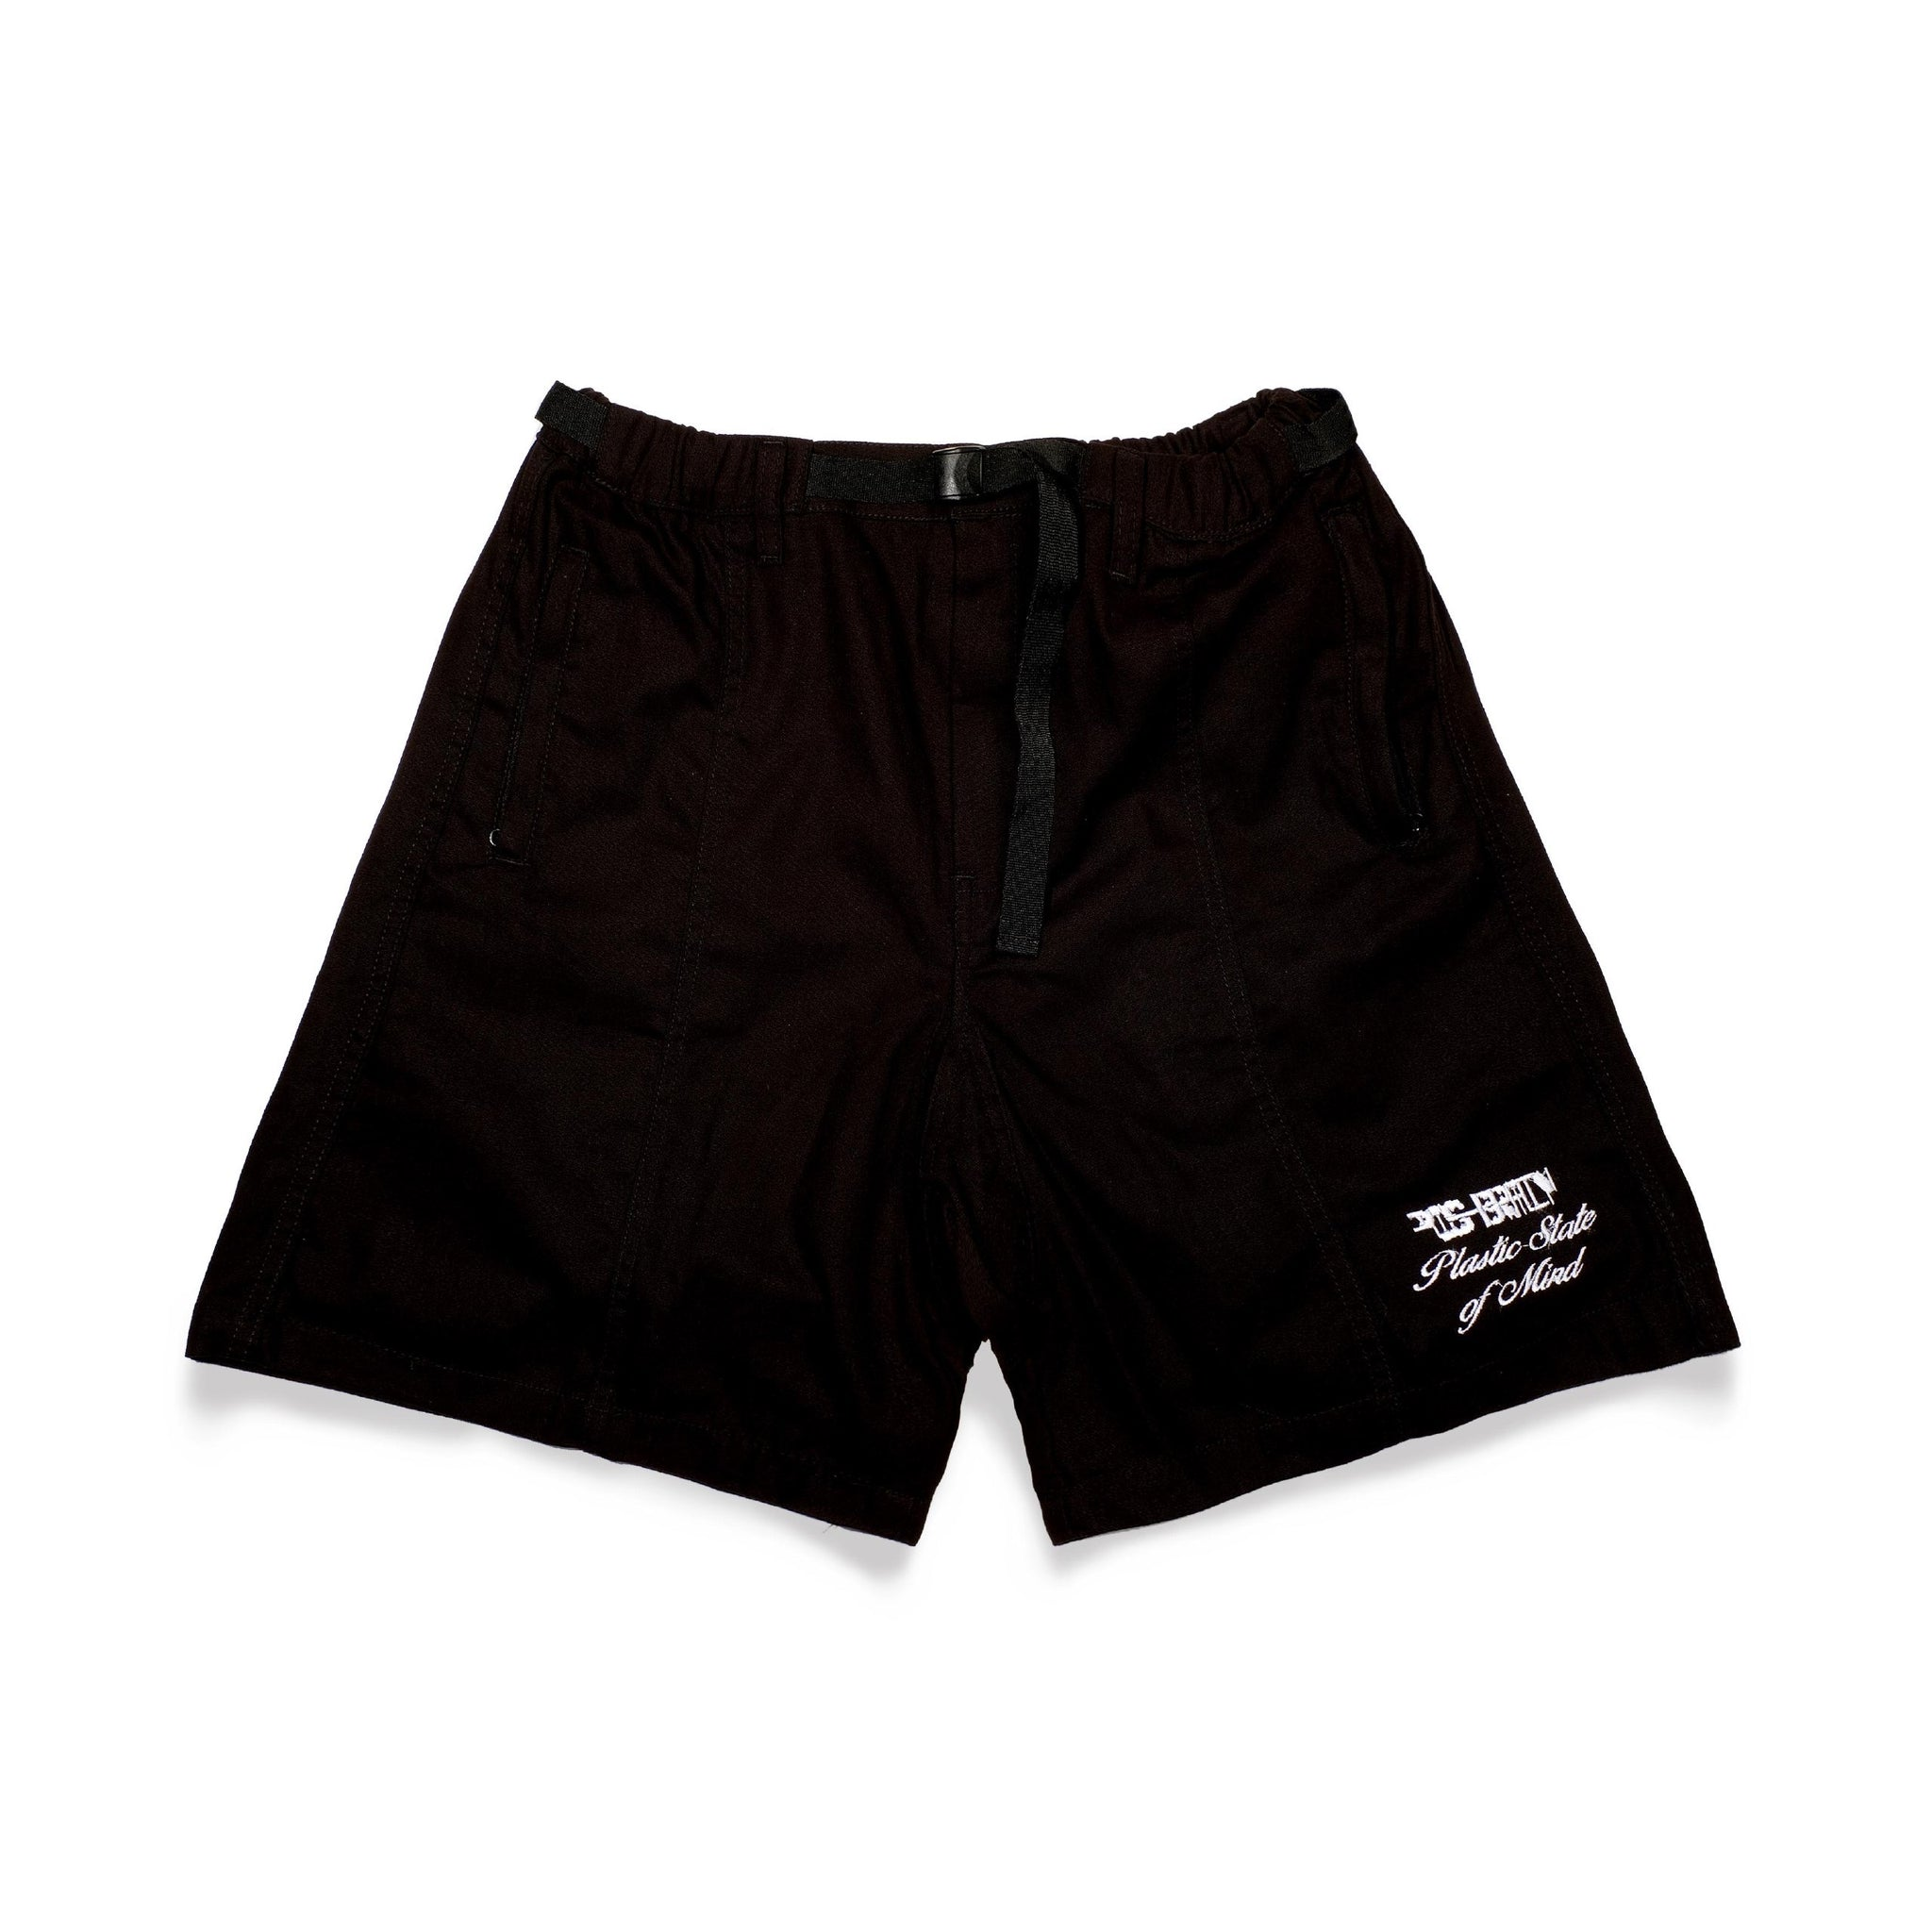 Mind Shorts (Black)